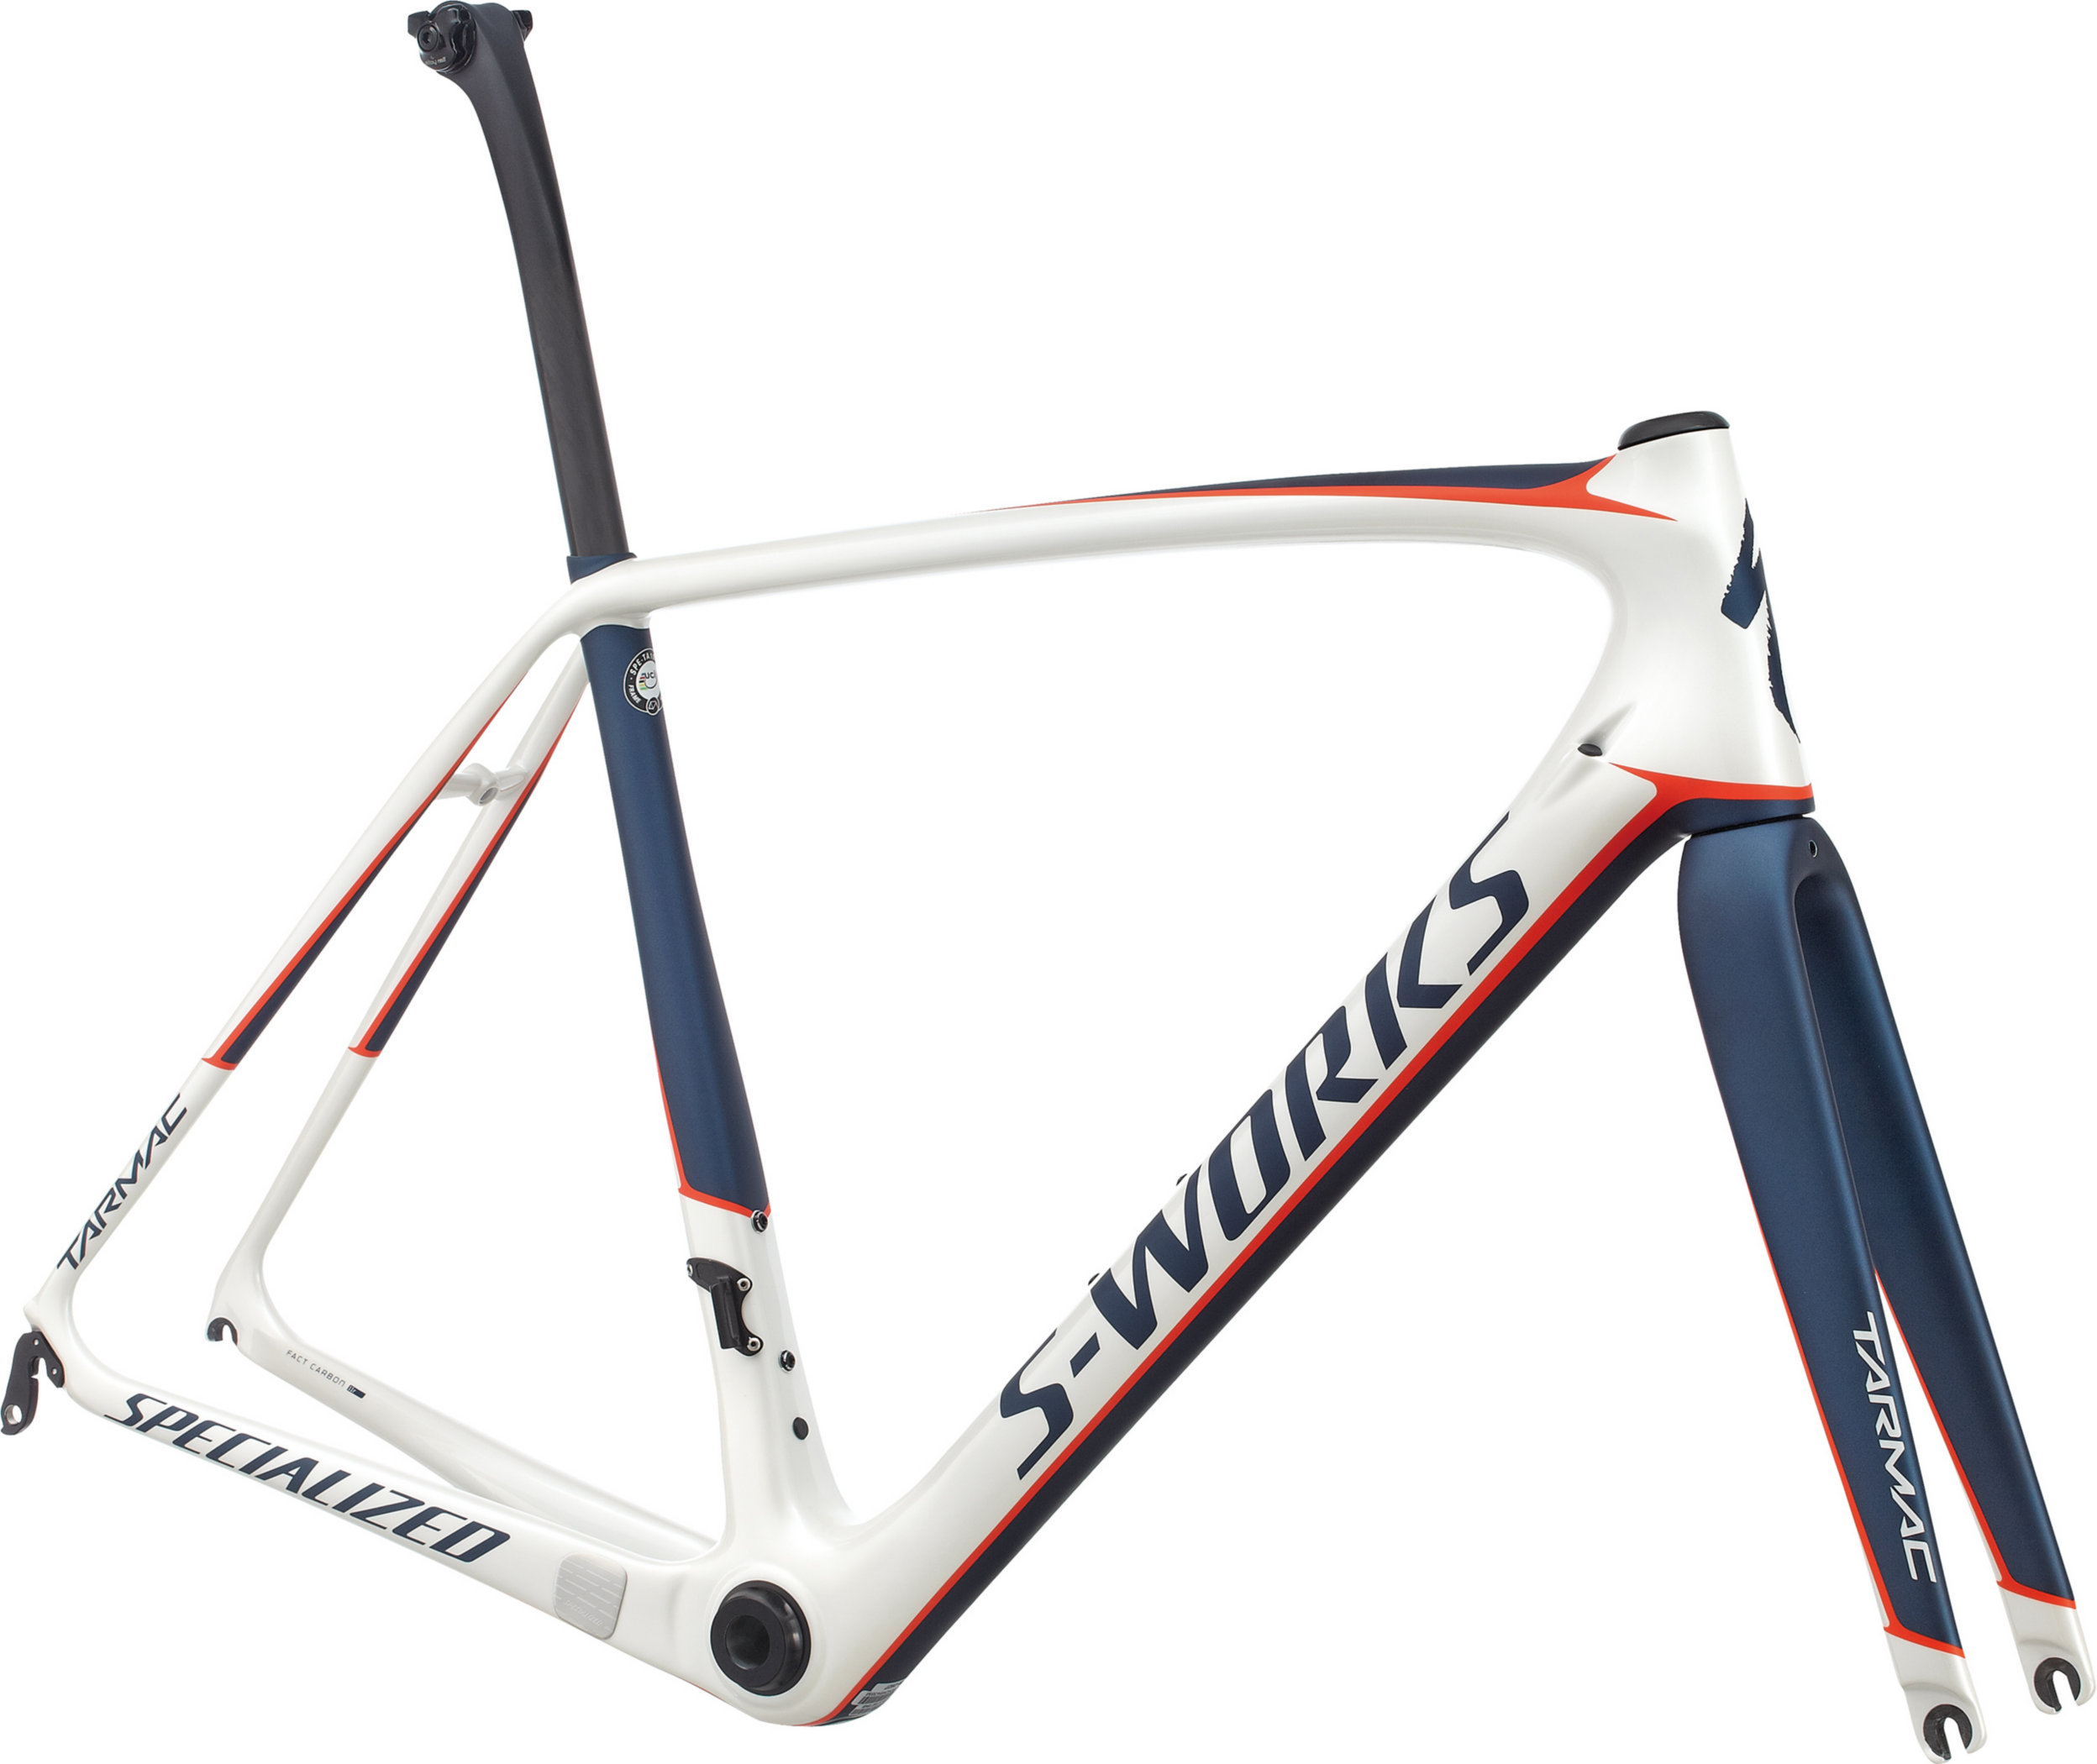 SPECIALIZED SW TARMAC FRMSET METWHT/NVY/RKTRED 56 - Alpha Bikes